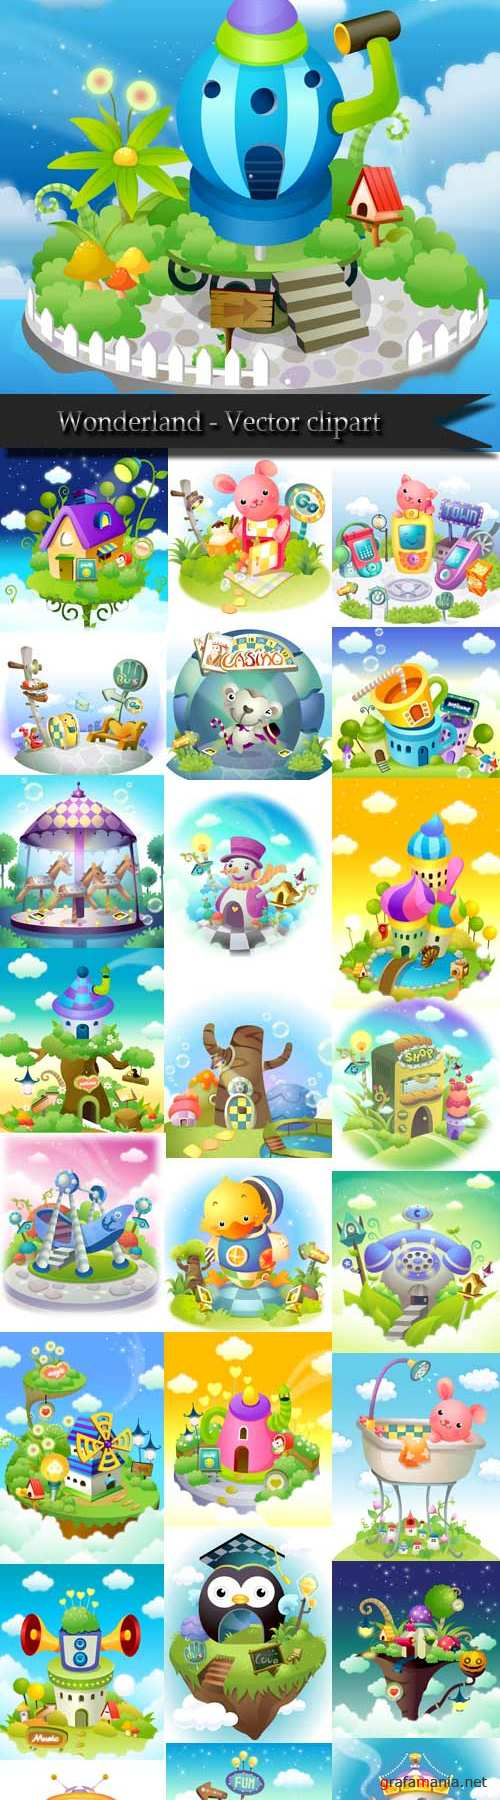 Wonderland - Vector clipart